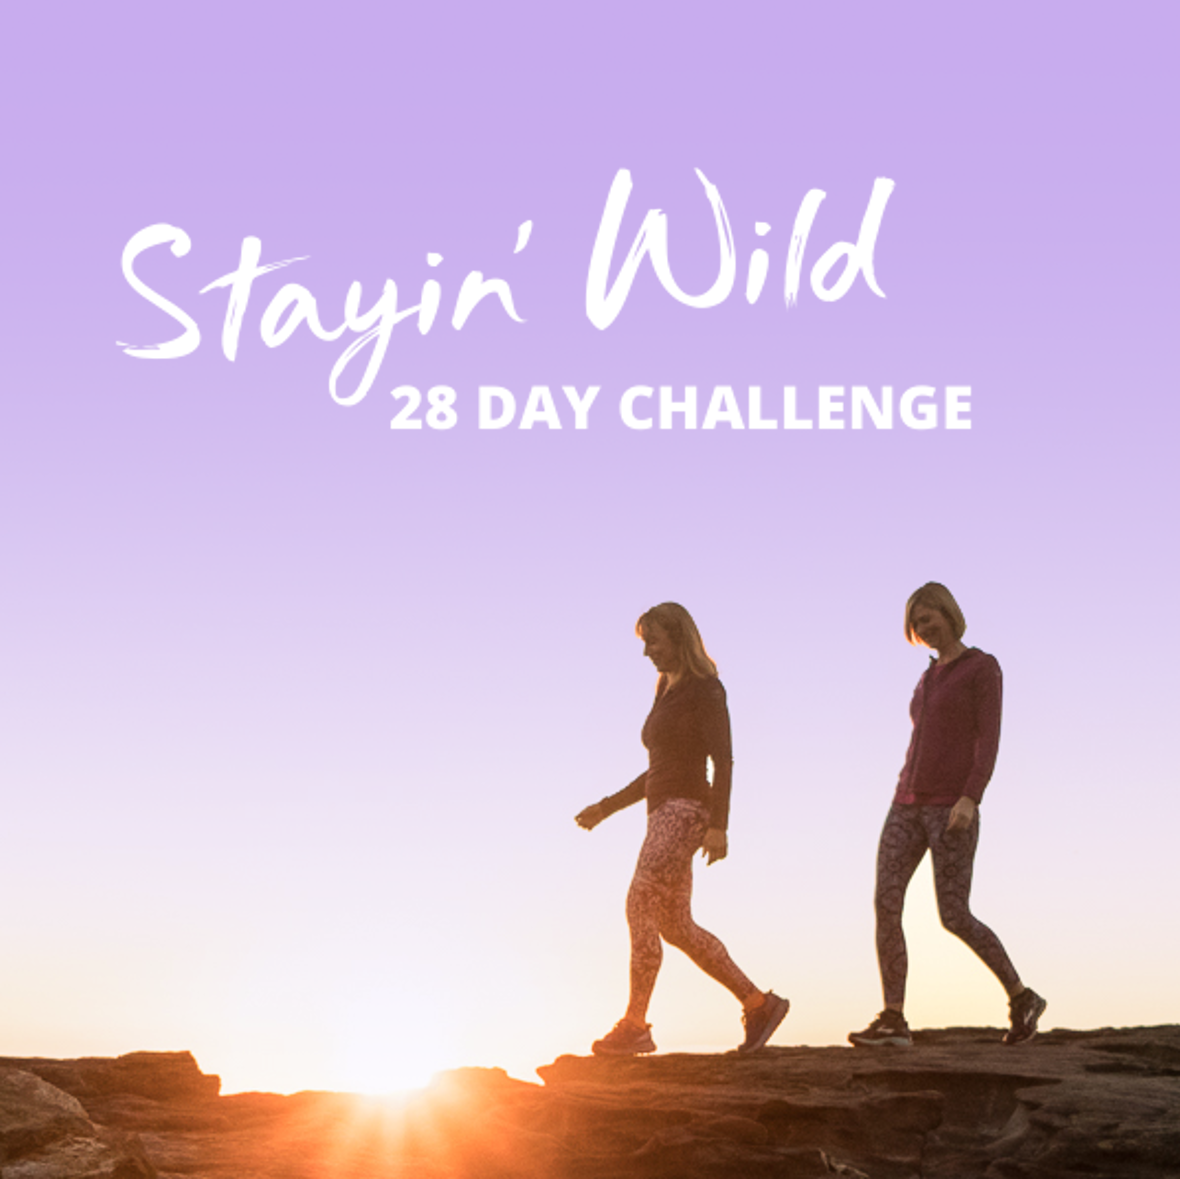 Join Stayin' Wild's 28 Day Challenge!